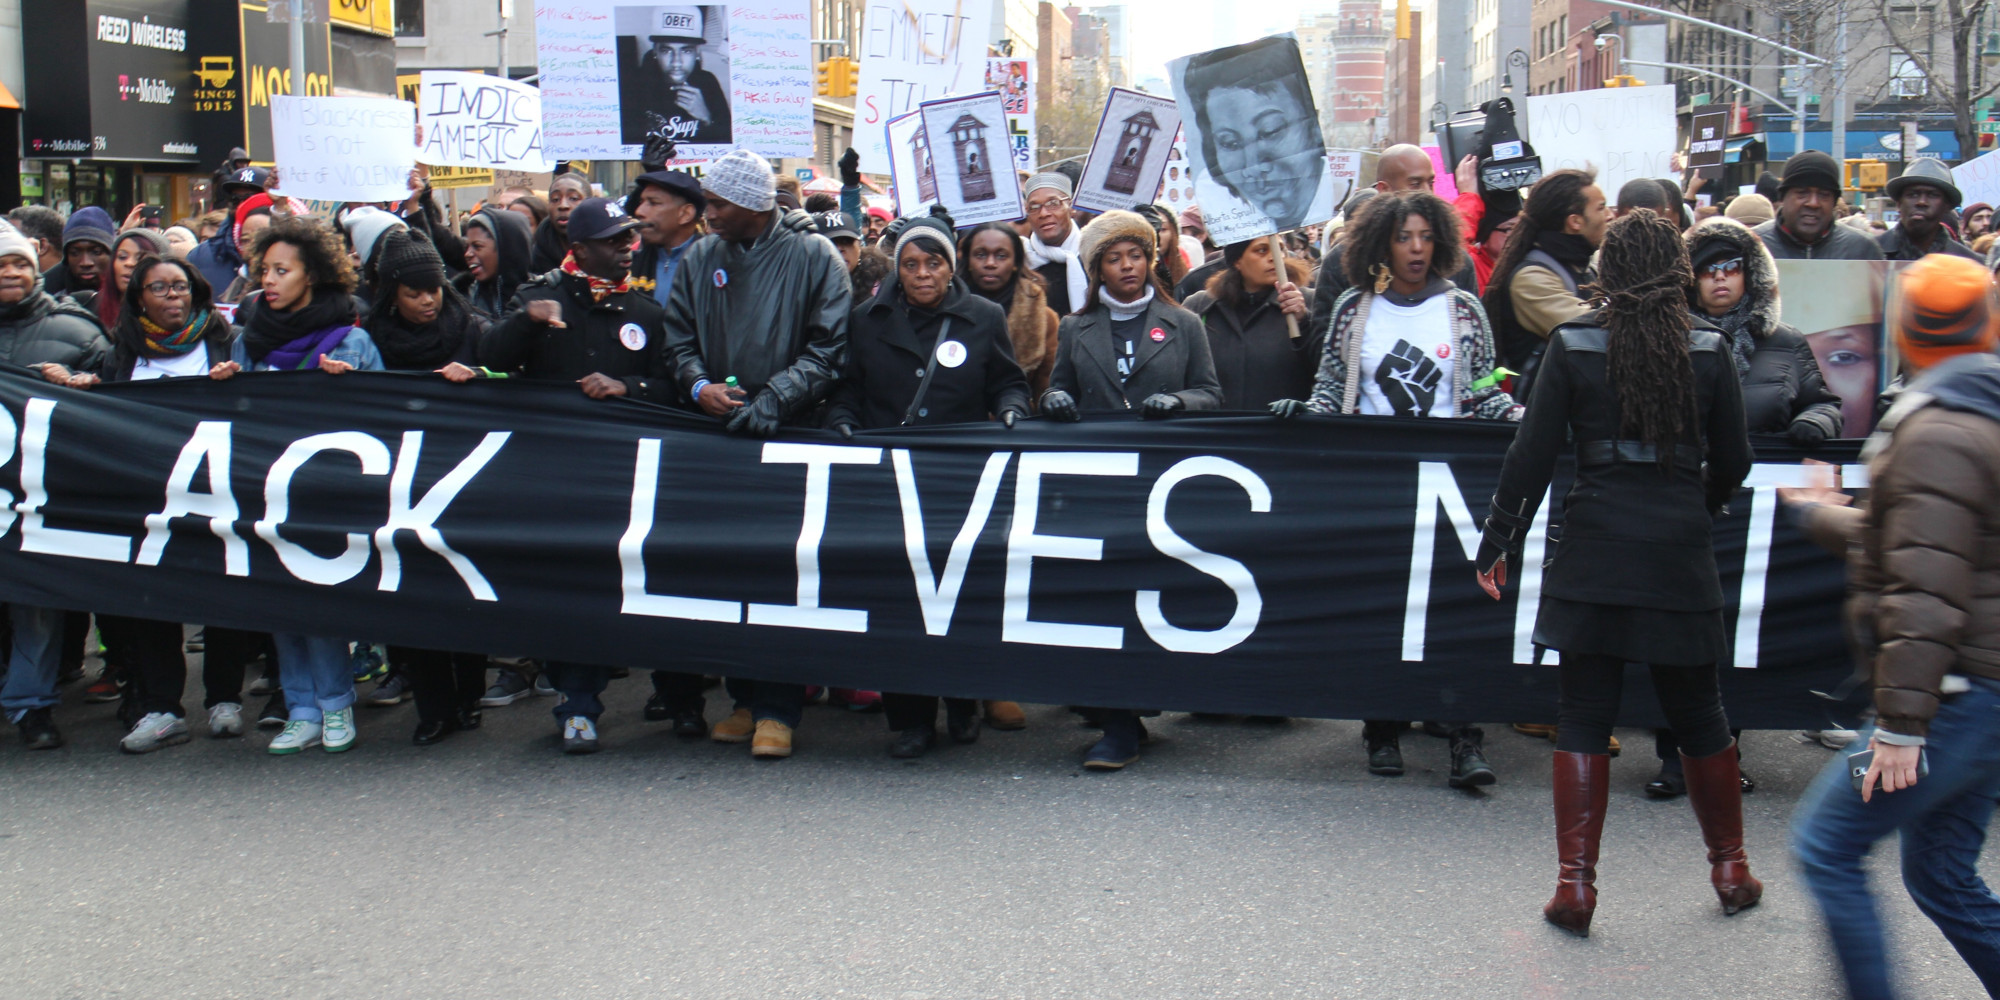 Did you know Black Lives Matter supports abortion, homosexuality, anti-family agenda?